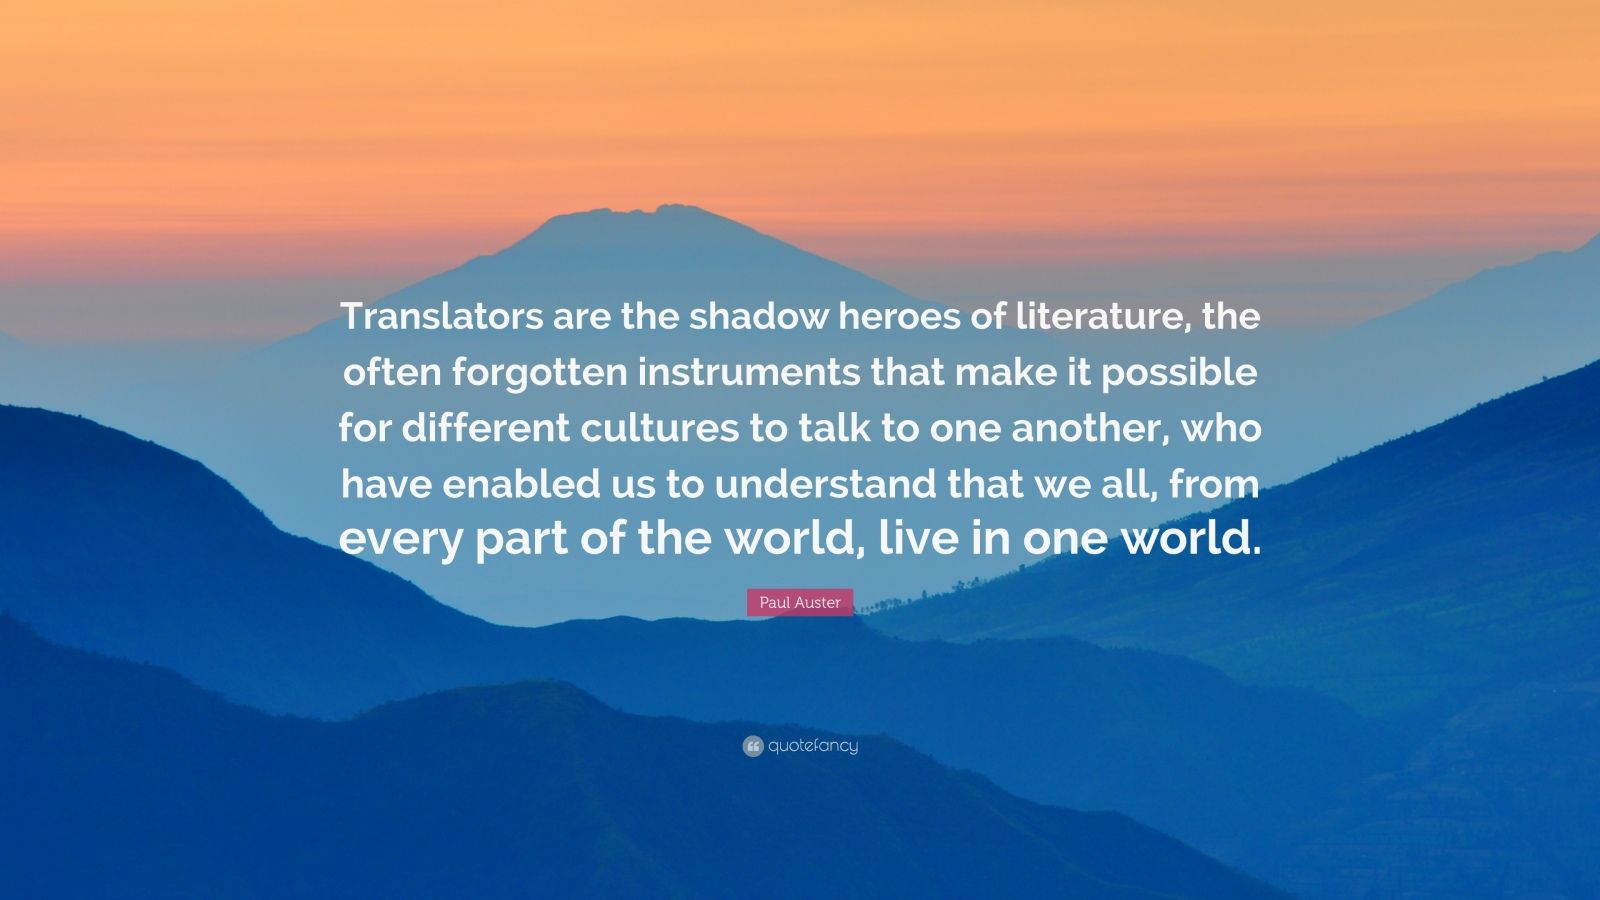 """Paul Auster Quote: """"Translators are the shadow heroes of literature, the often forgotten instruments that make it possible for different cultures to talk to one another, who have enabled us to understand that we all, from every part of the world, live in one world."""""""